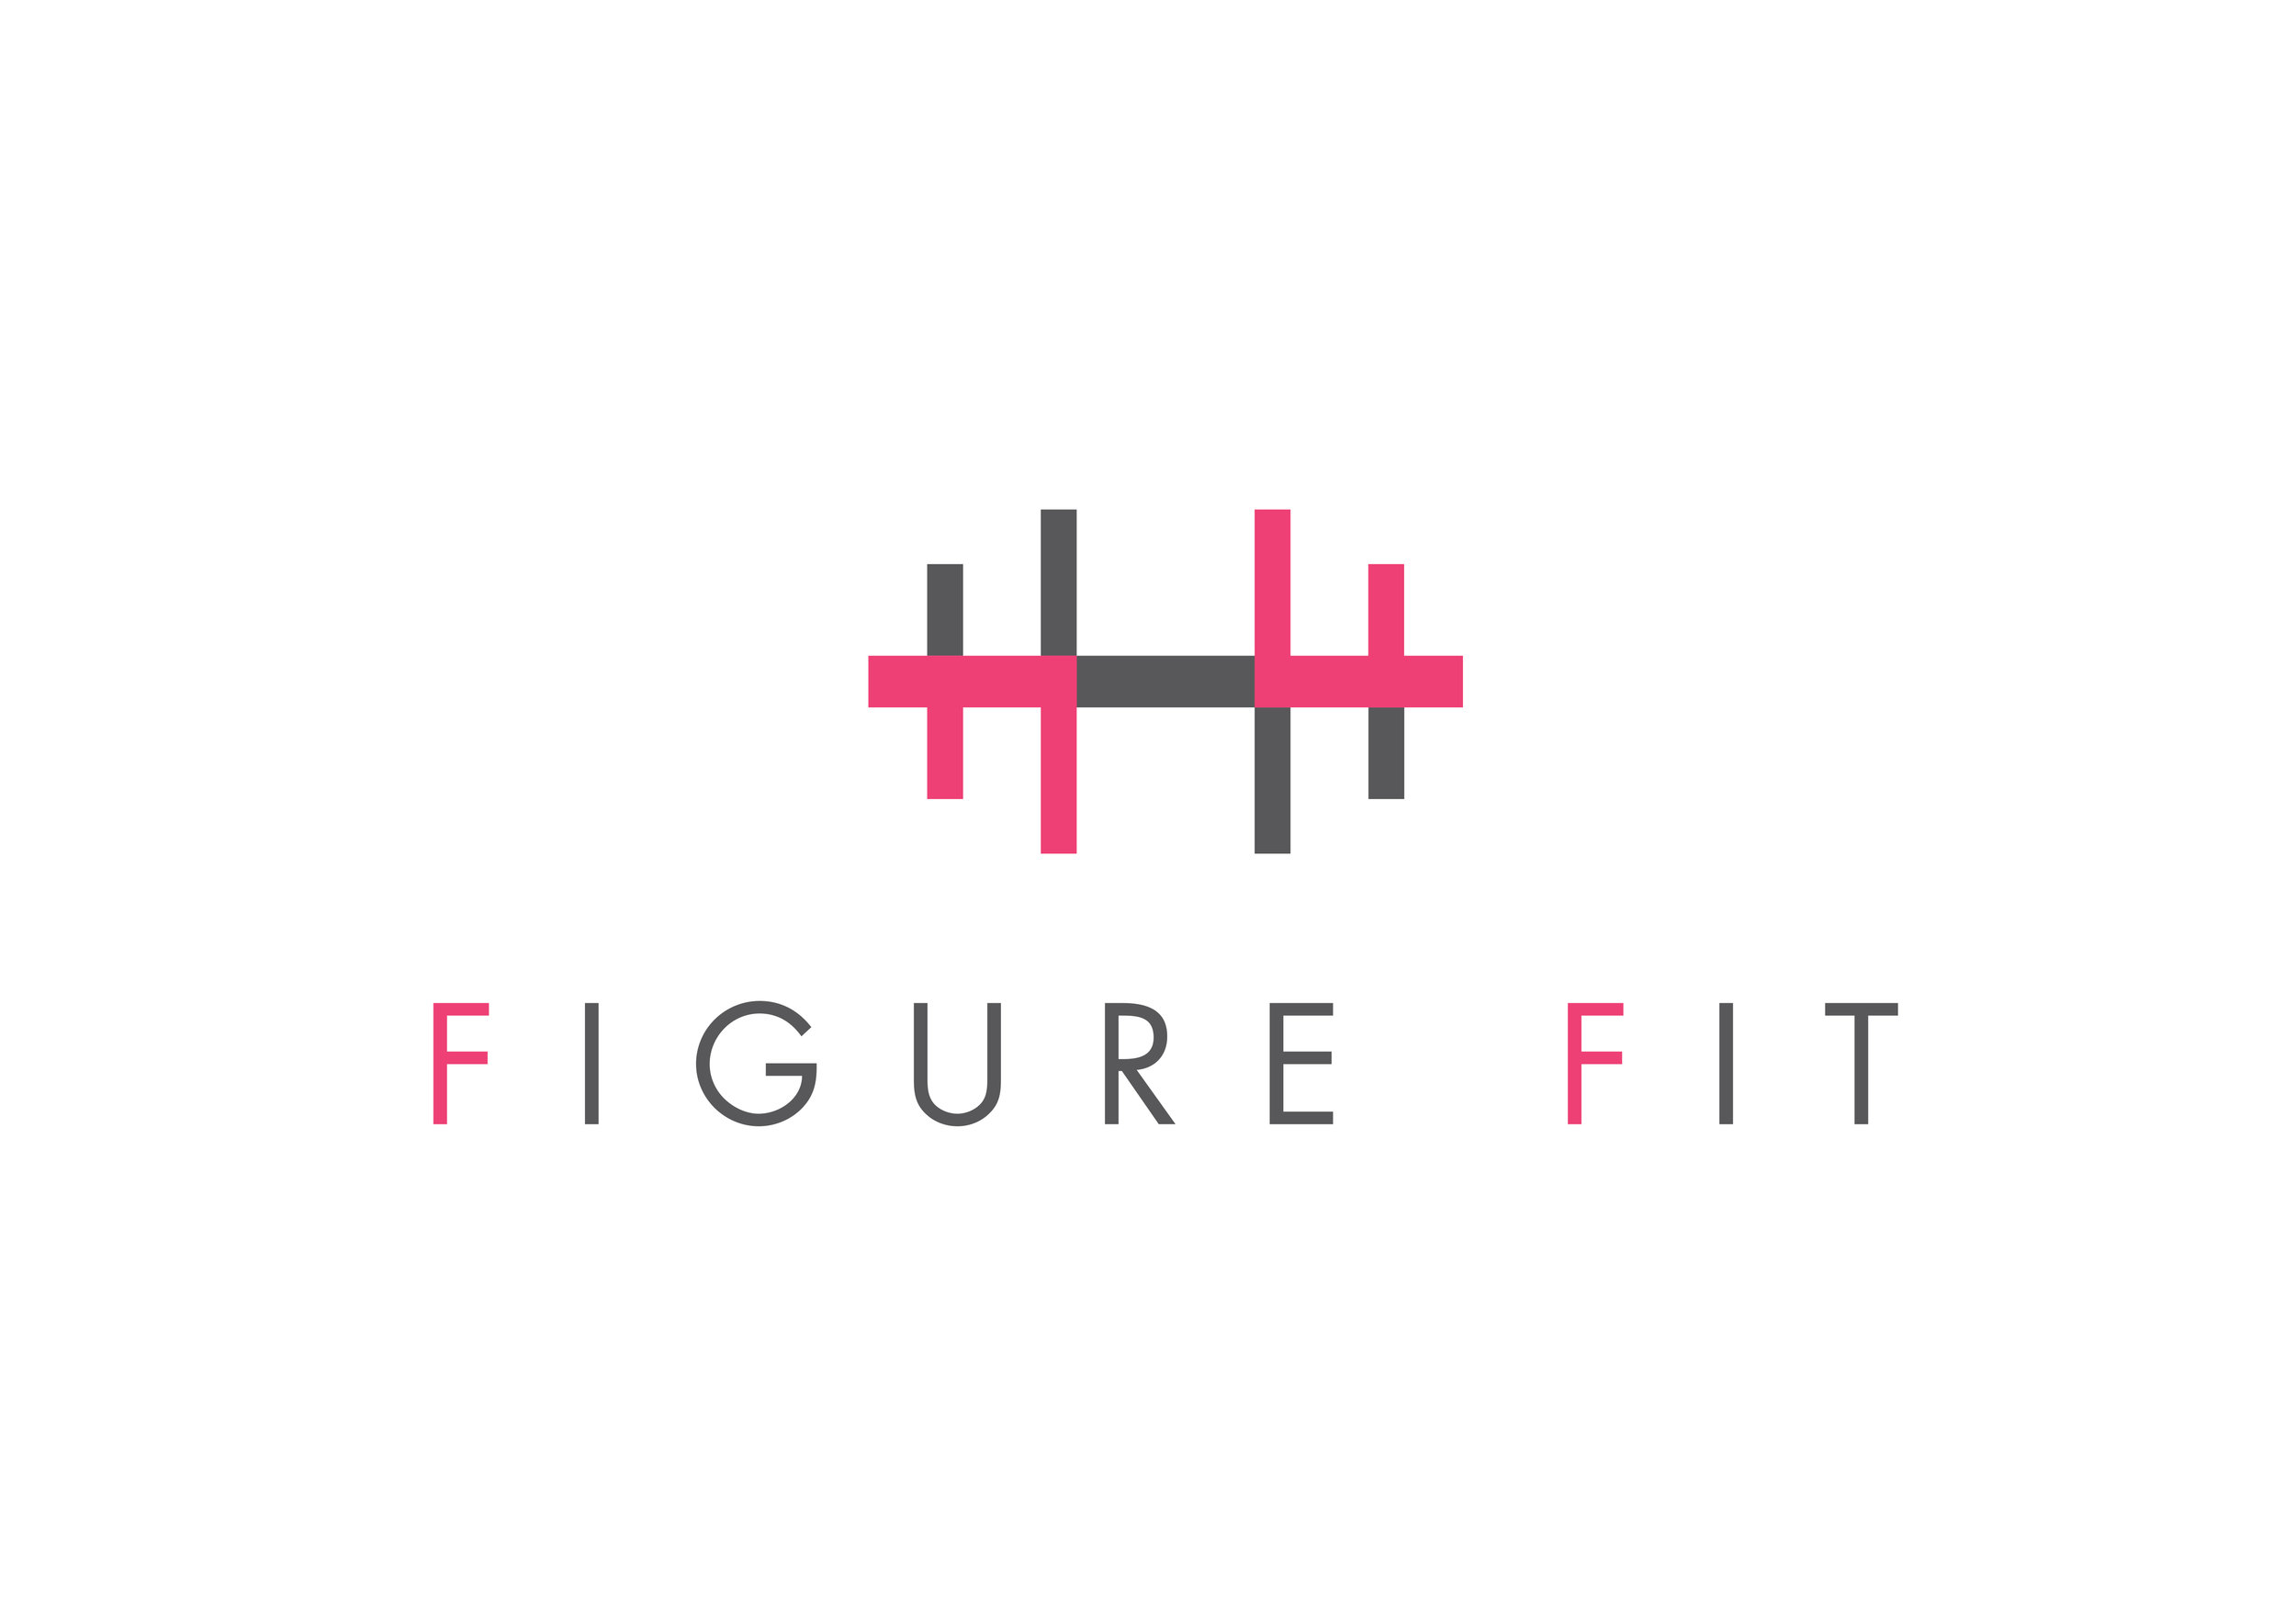 Figure-Fit-grey-and-pink-logo .jpg